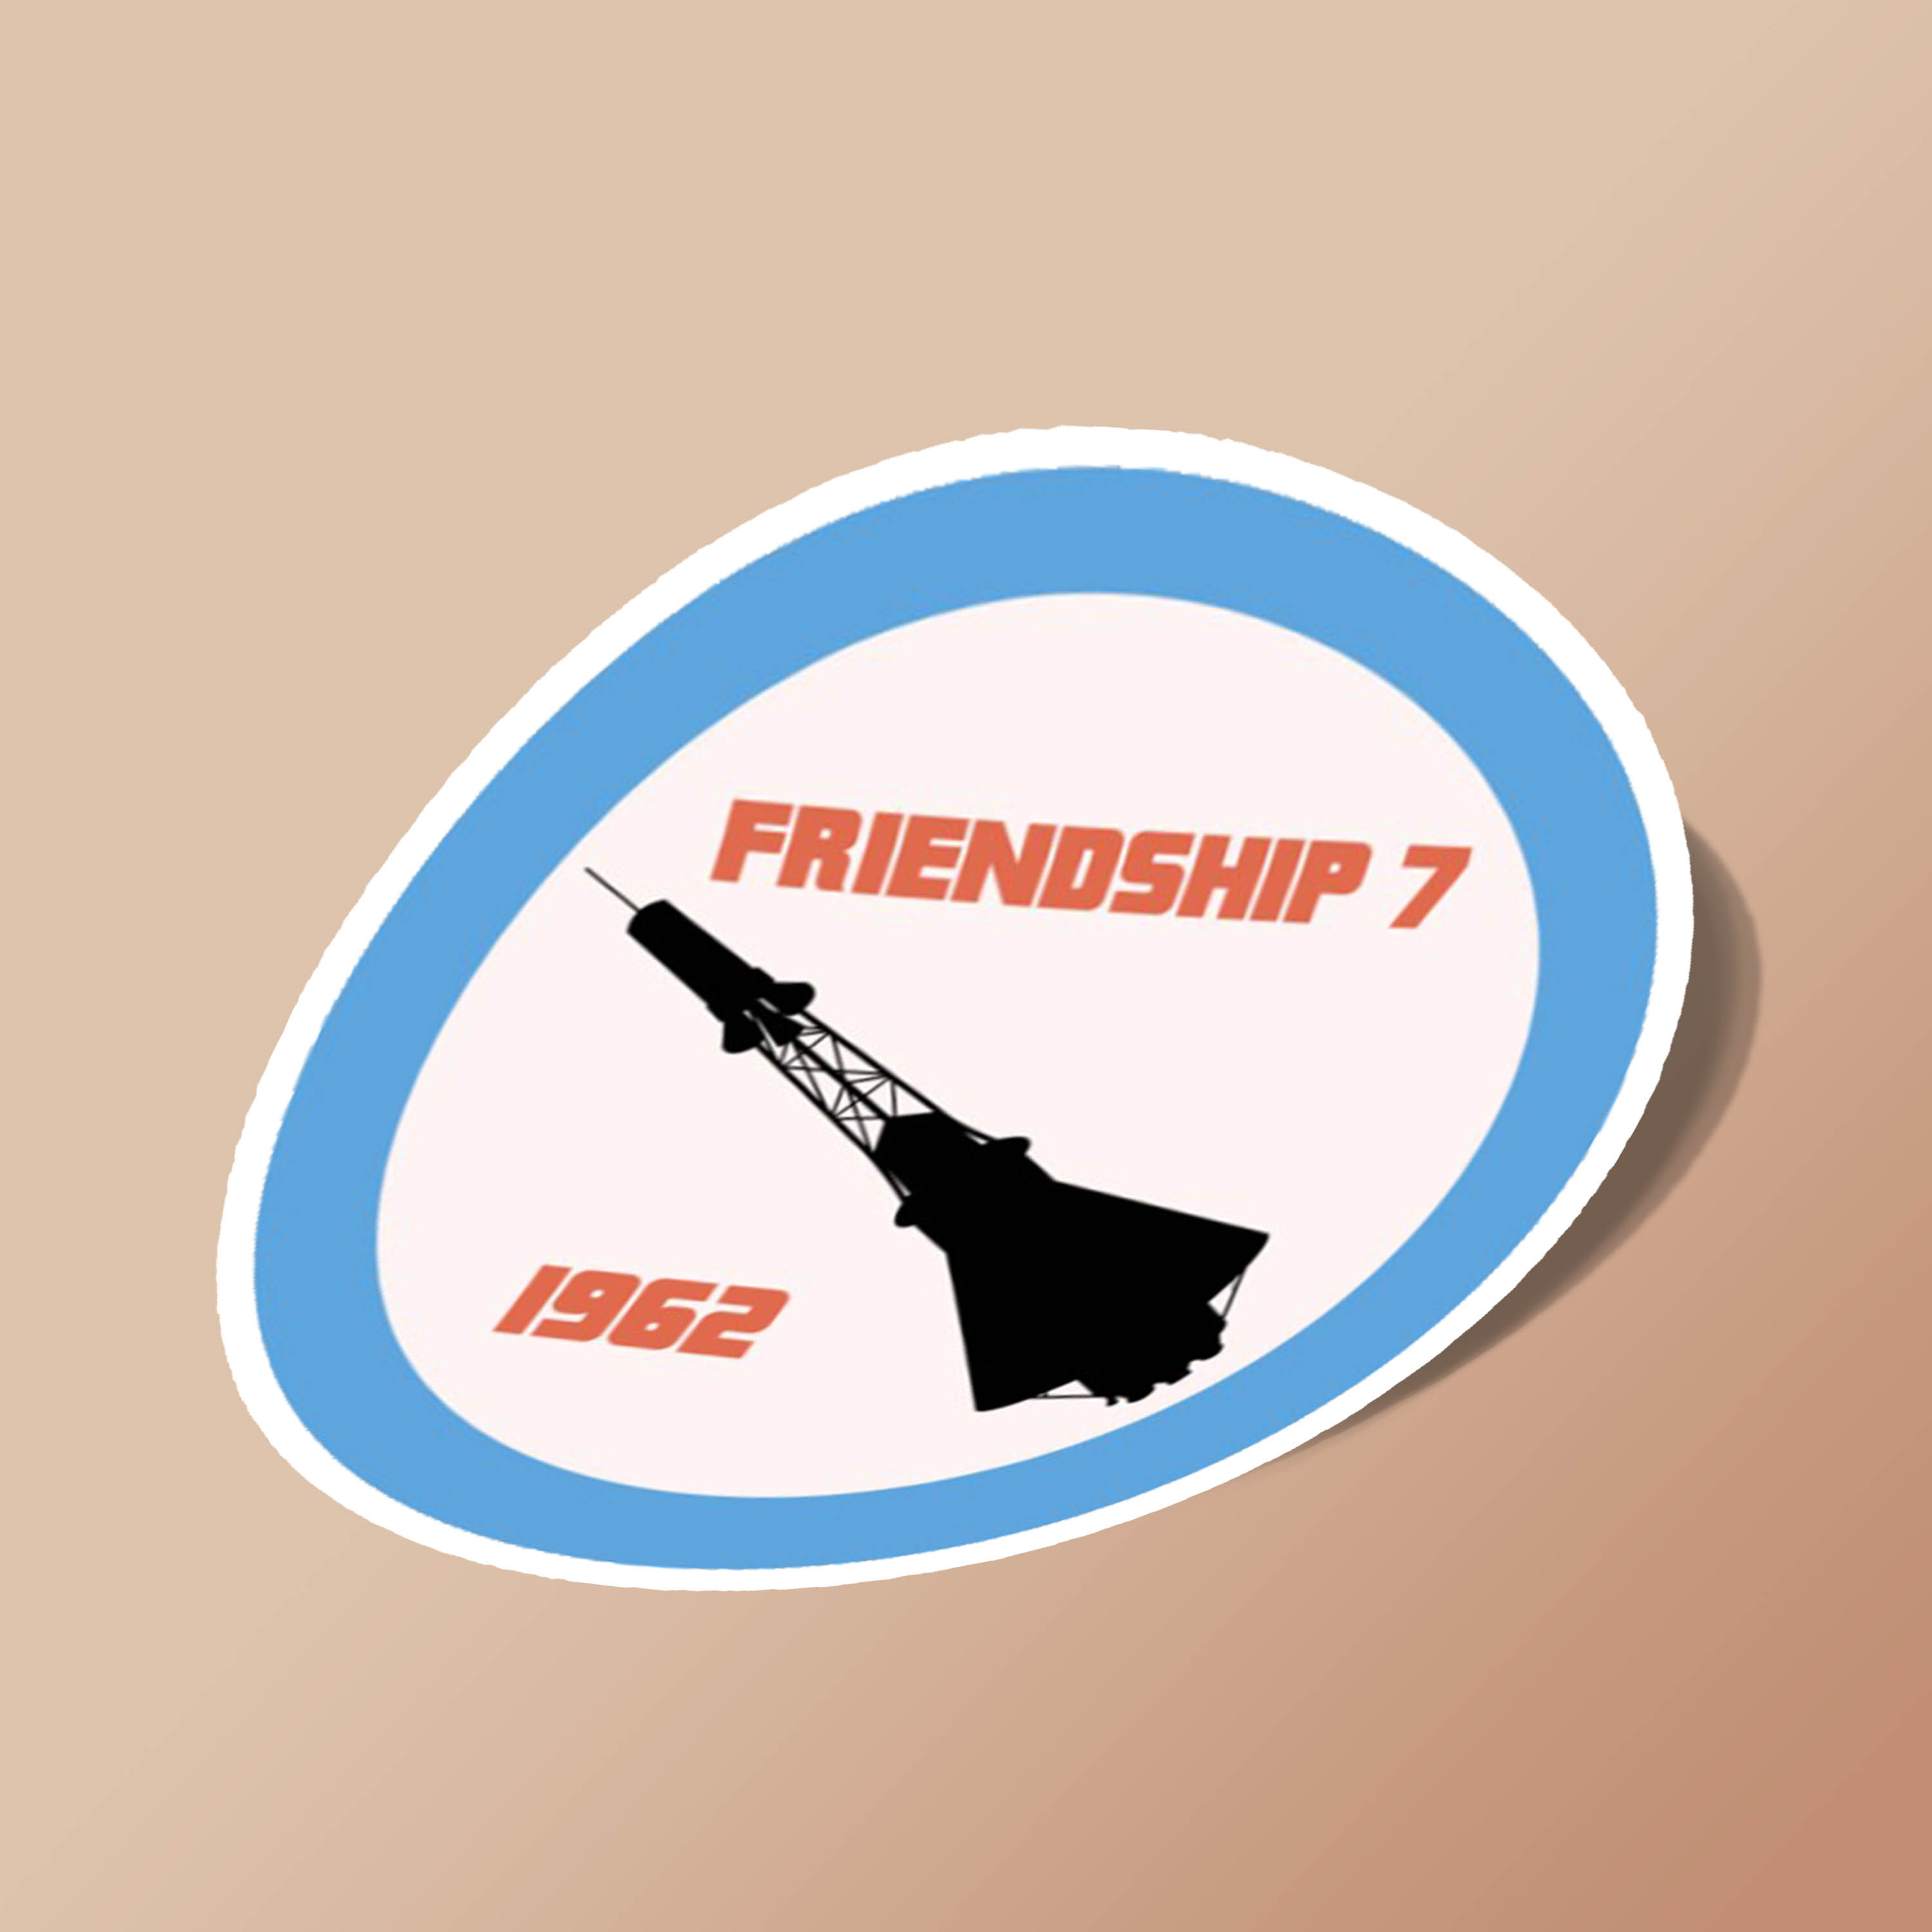 Friendship 7 Retro